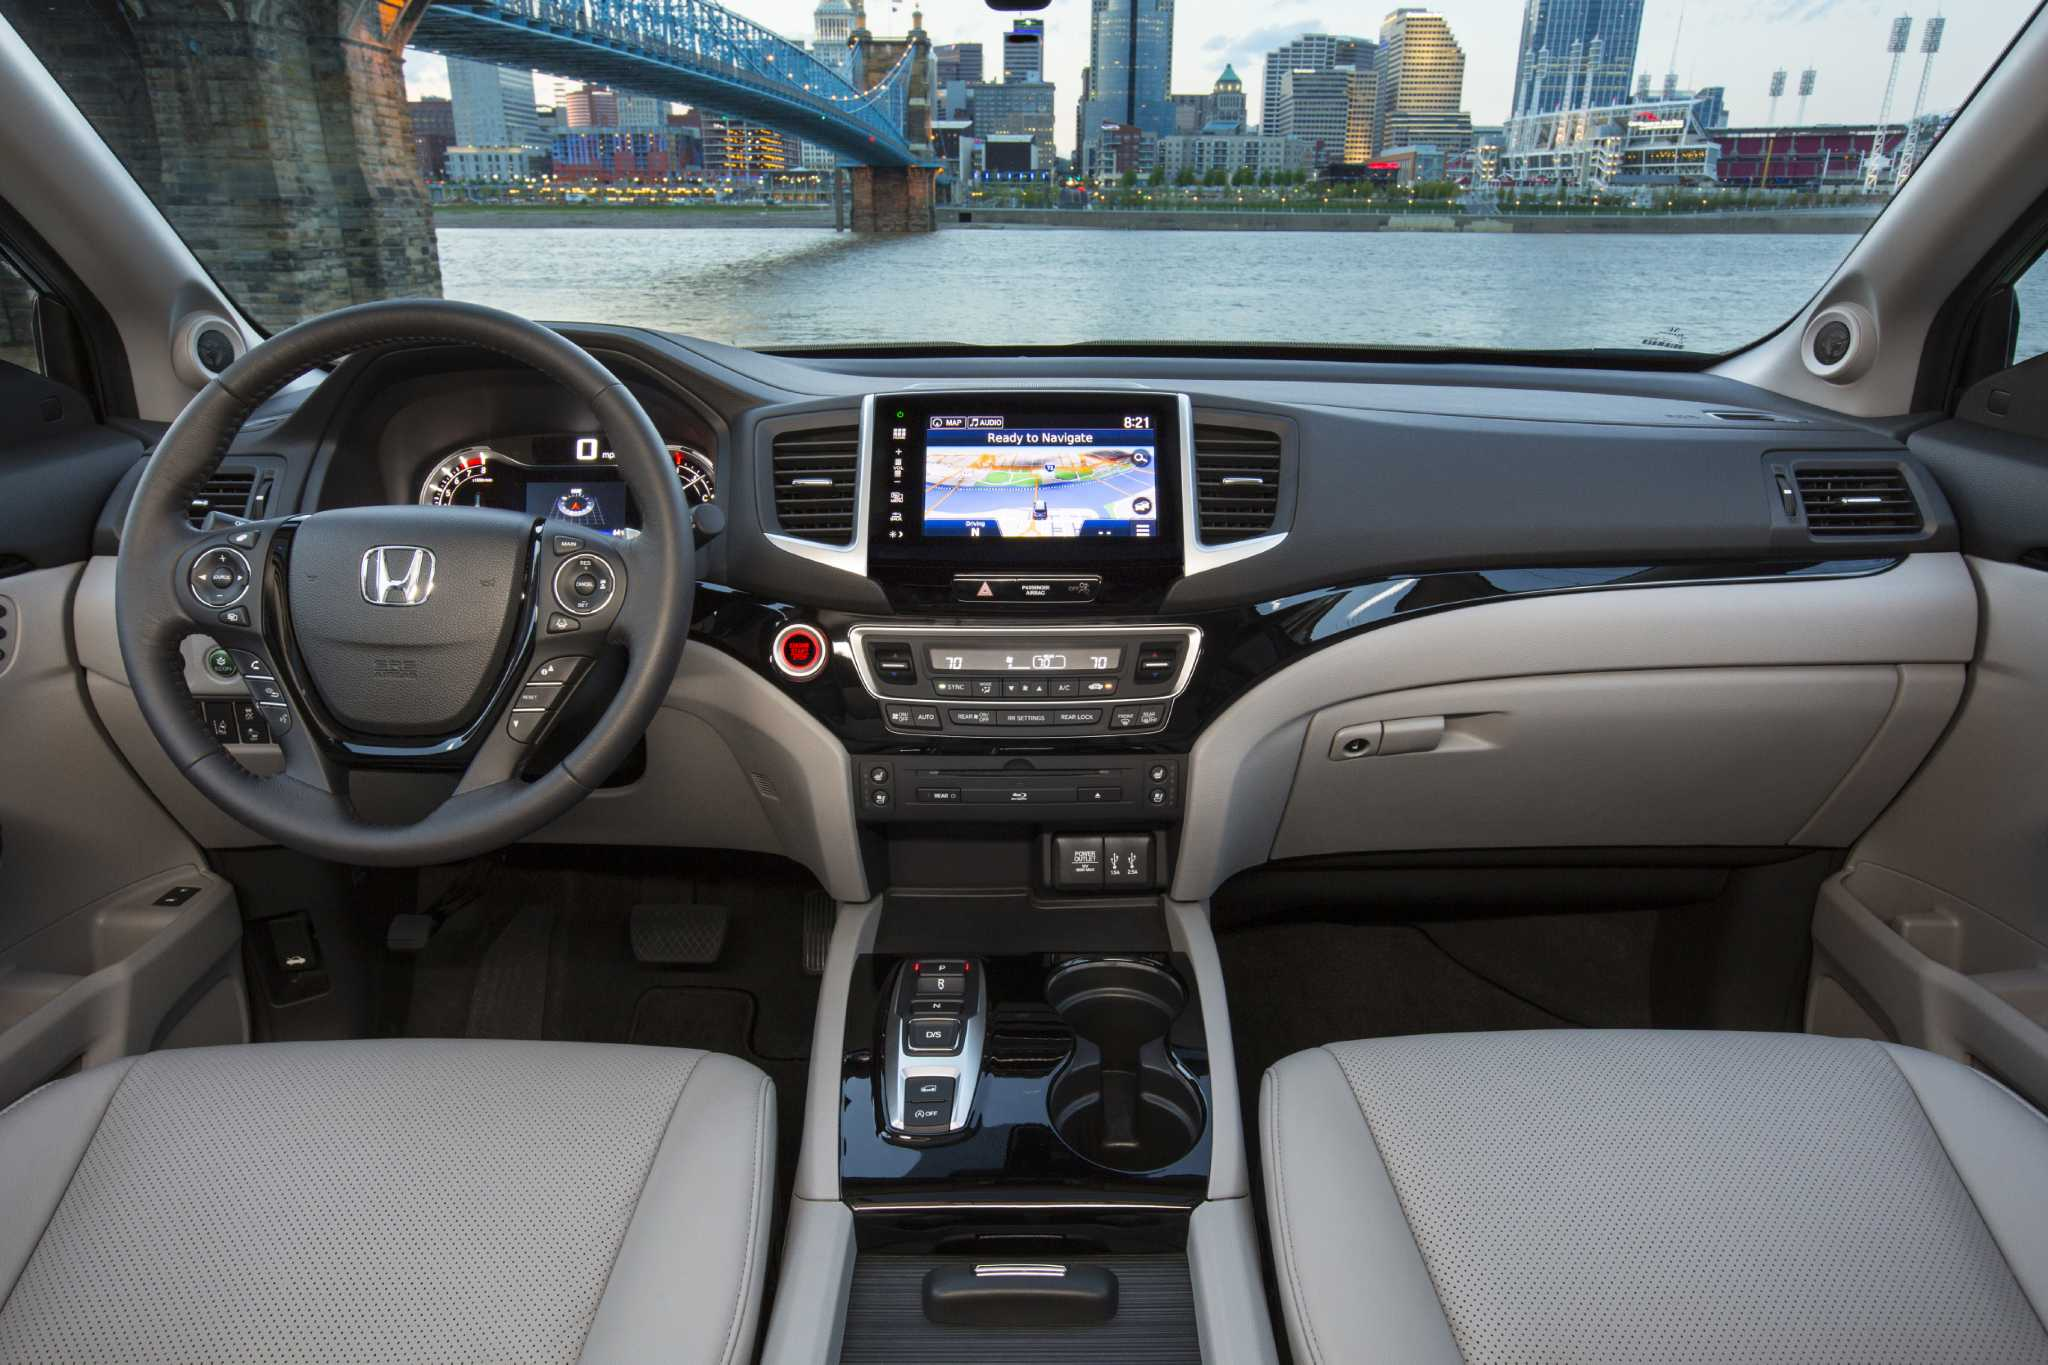 Honda updates Pilot crossover for 2016